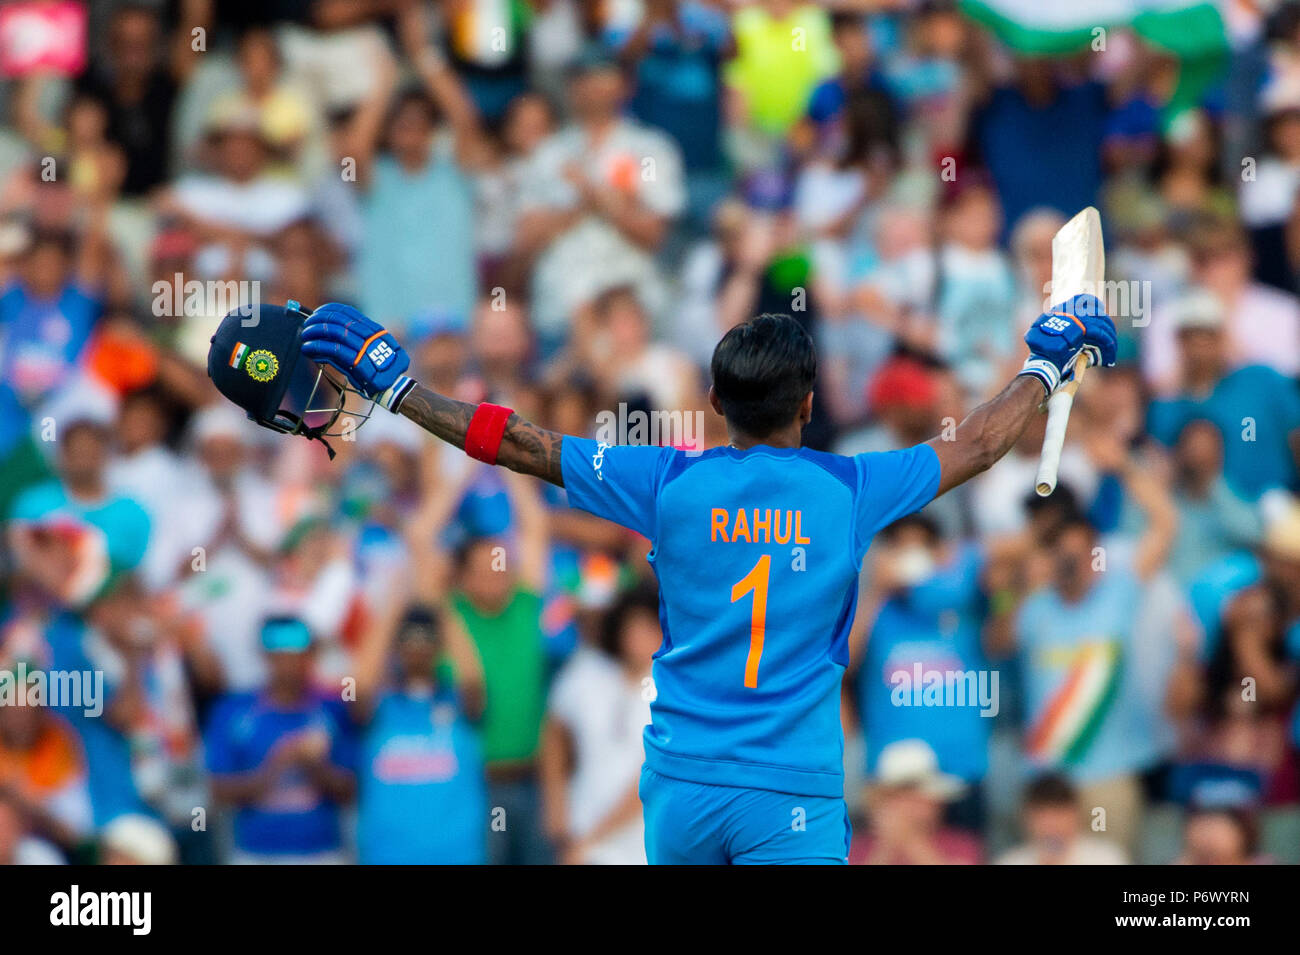 Manchester, UK. 3rd July 2018. Rahul Tripathi of India celebrates his century during the 1st International T20 match between England and India at Old Trafford, Manchester, England on 3 July 2018. Photo by Brandon Griffiths. Credit: Brandon Griffiths/Alamy Live News - Stock Image